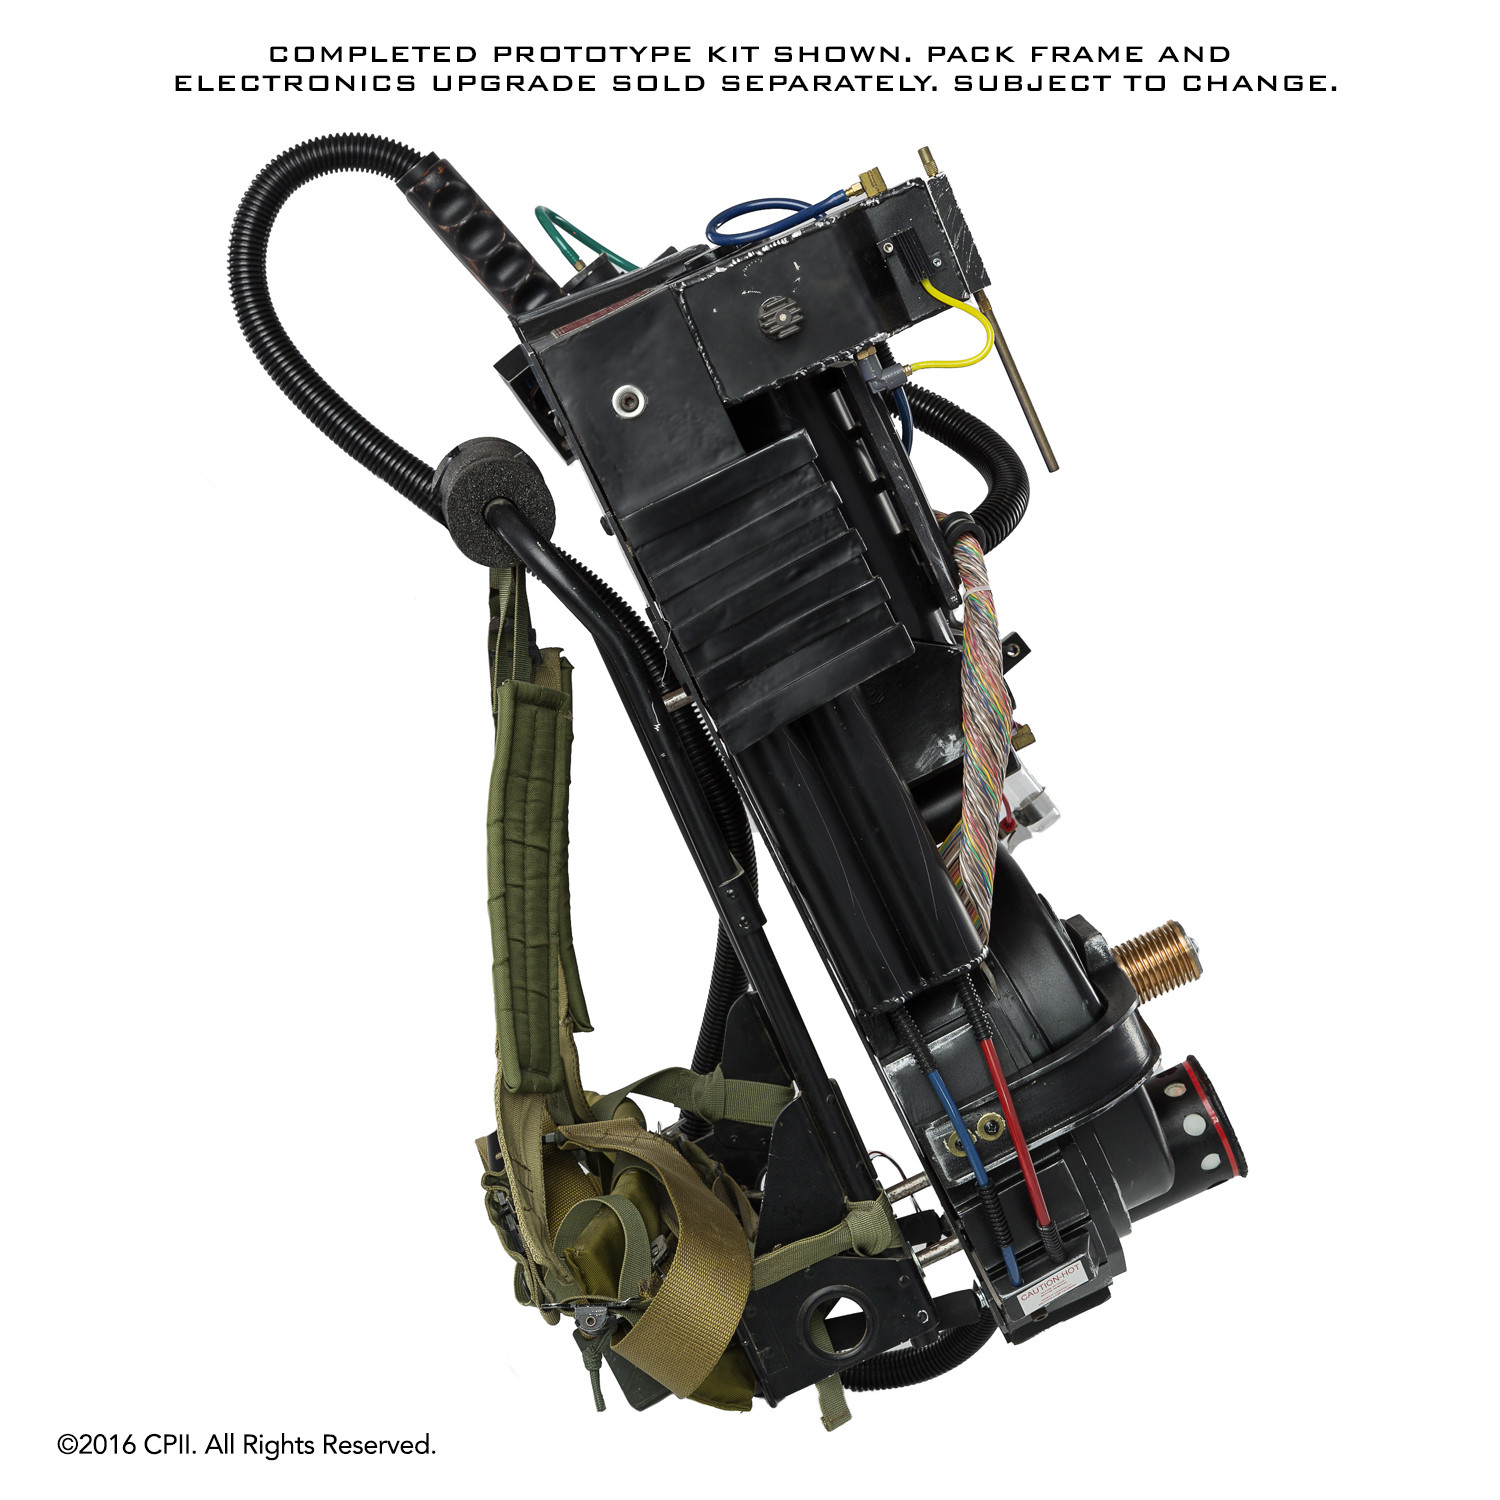 Ghostbusters Proton Pack Kit